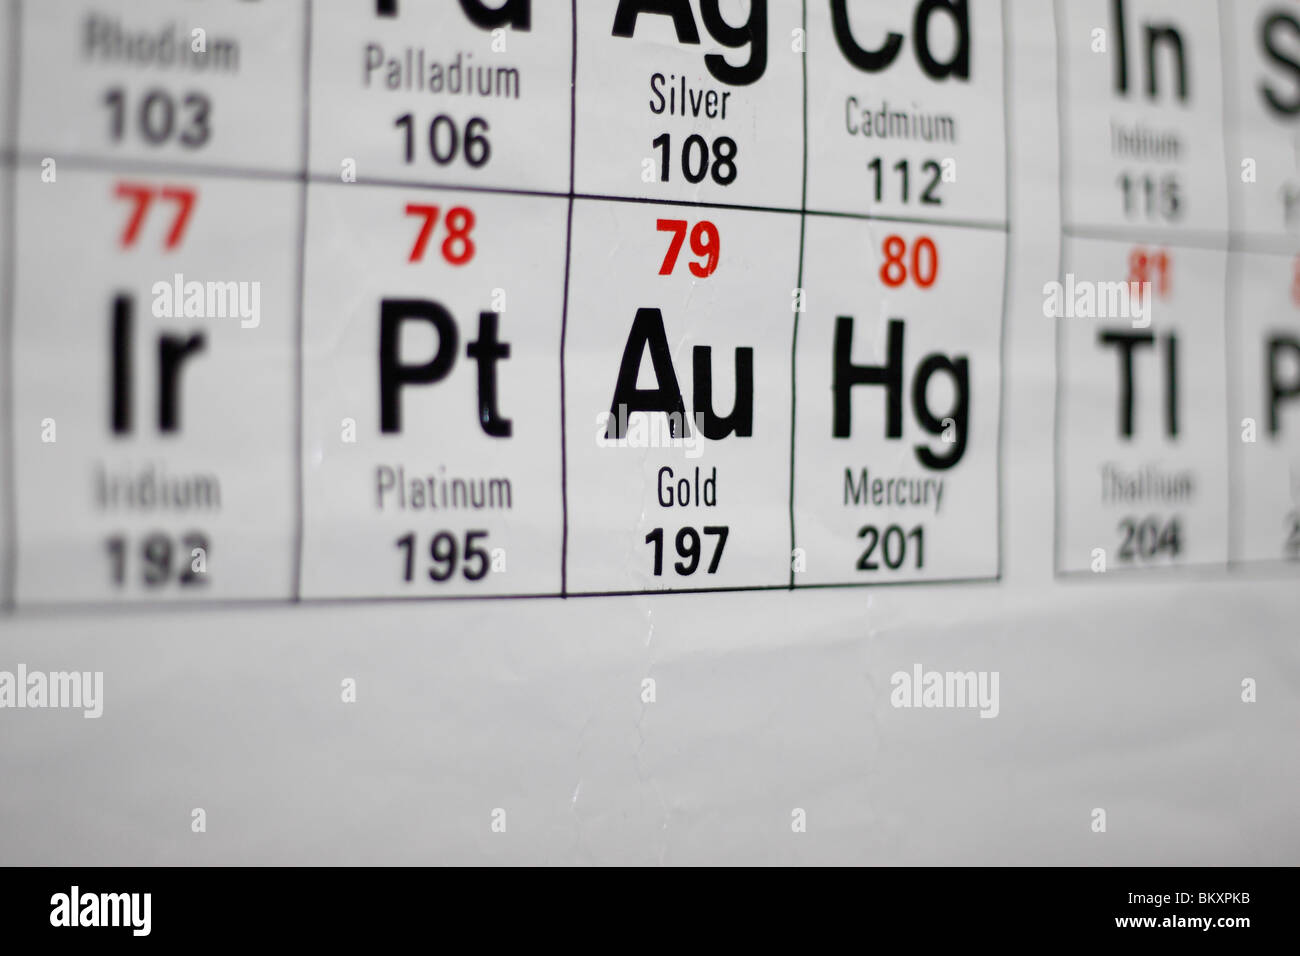 Close up angled view of a uk high school periodic table focusing on close up angled view of a uk high school periodic table focusing on the element goldau with other elements out of focus urtaz Gallery